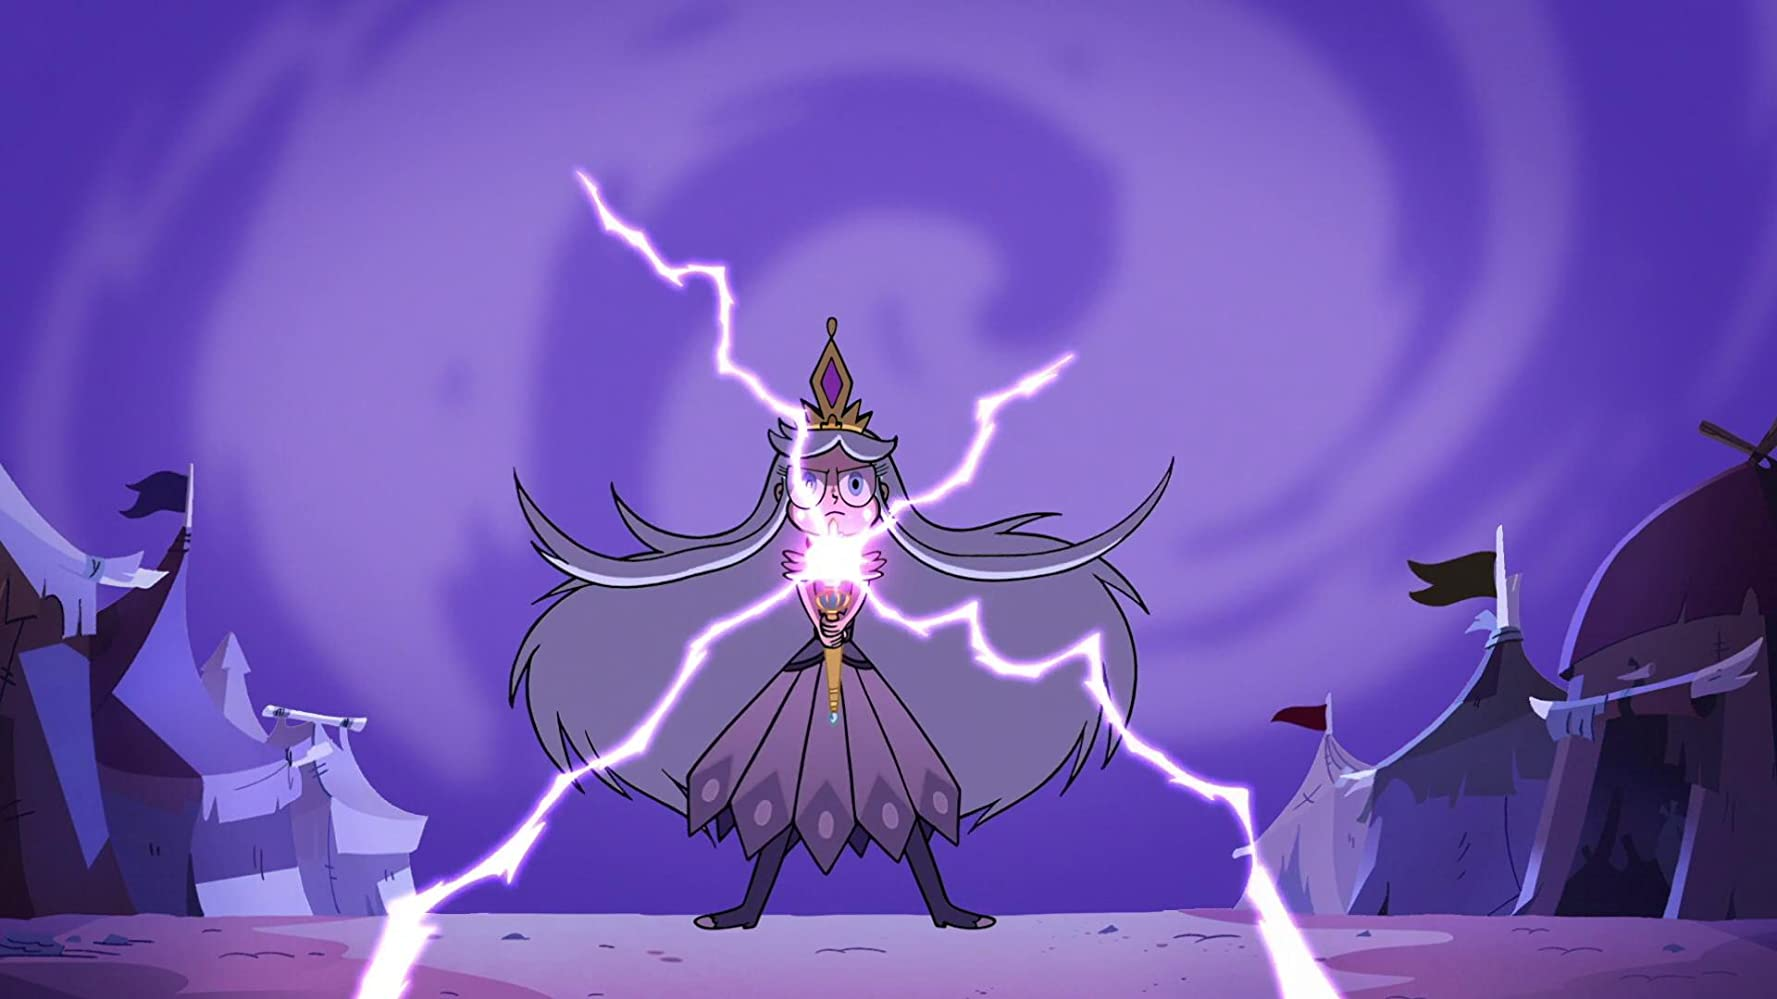 image star butterfly combat miouni forces evil battle mewni disney